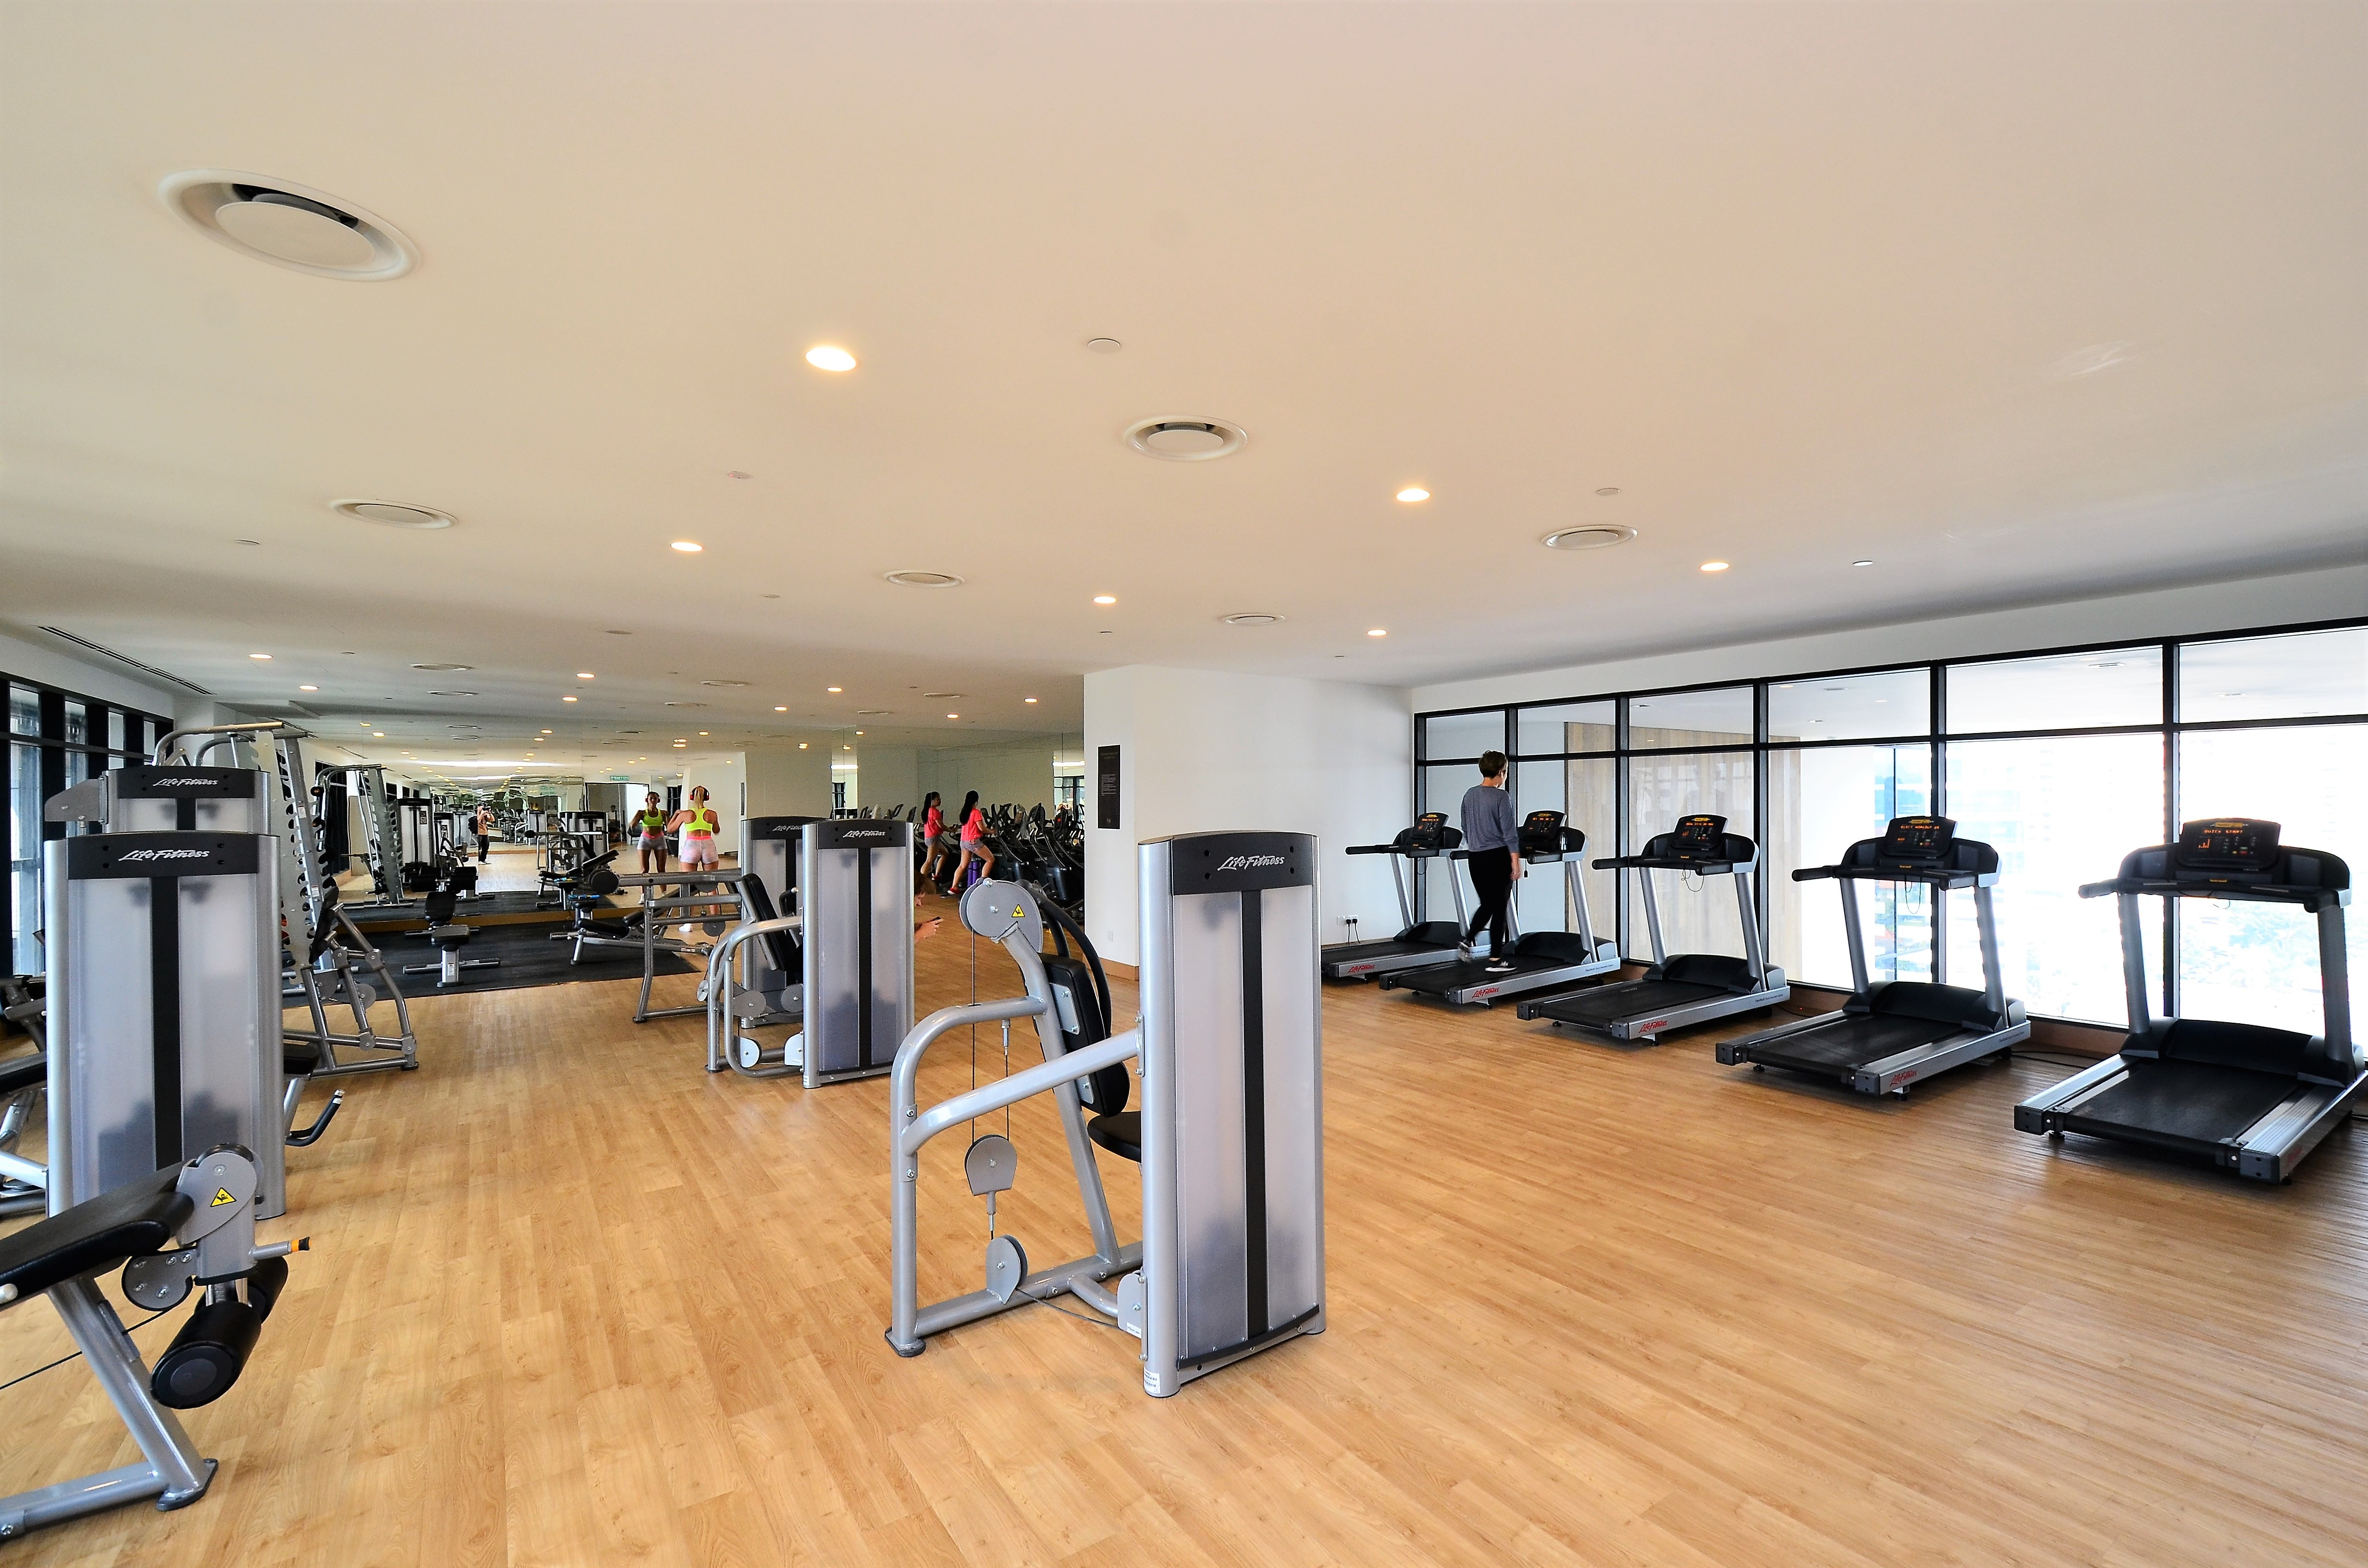 a spacious gym studio with treadmill and other gym equipment